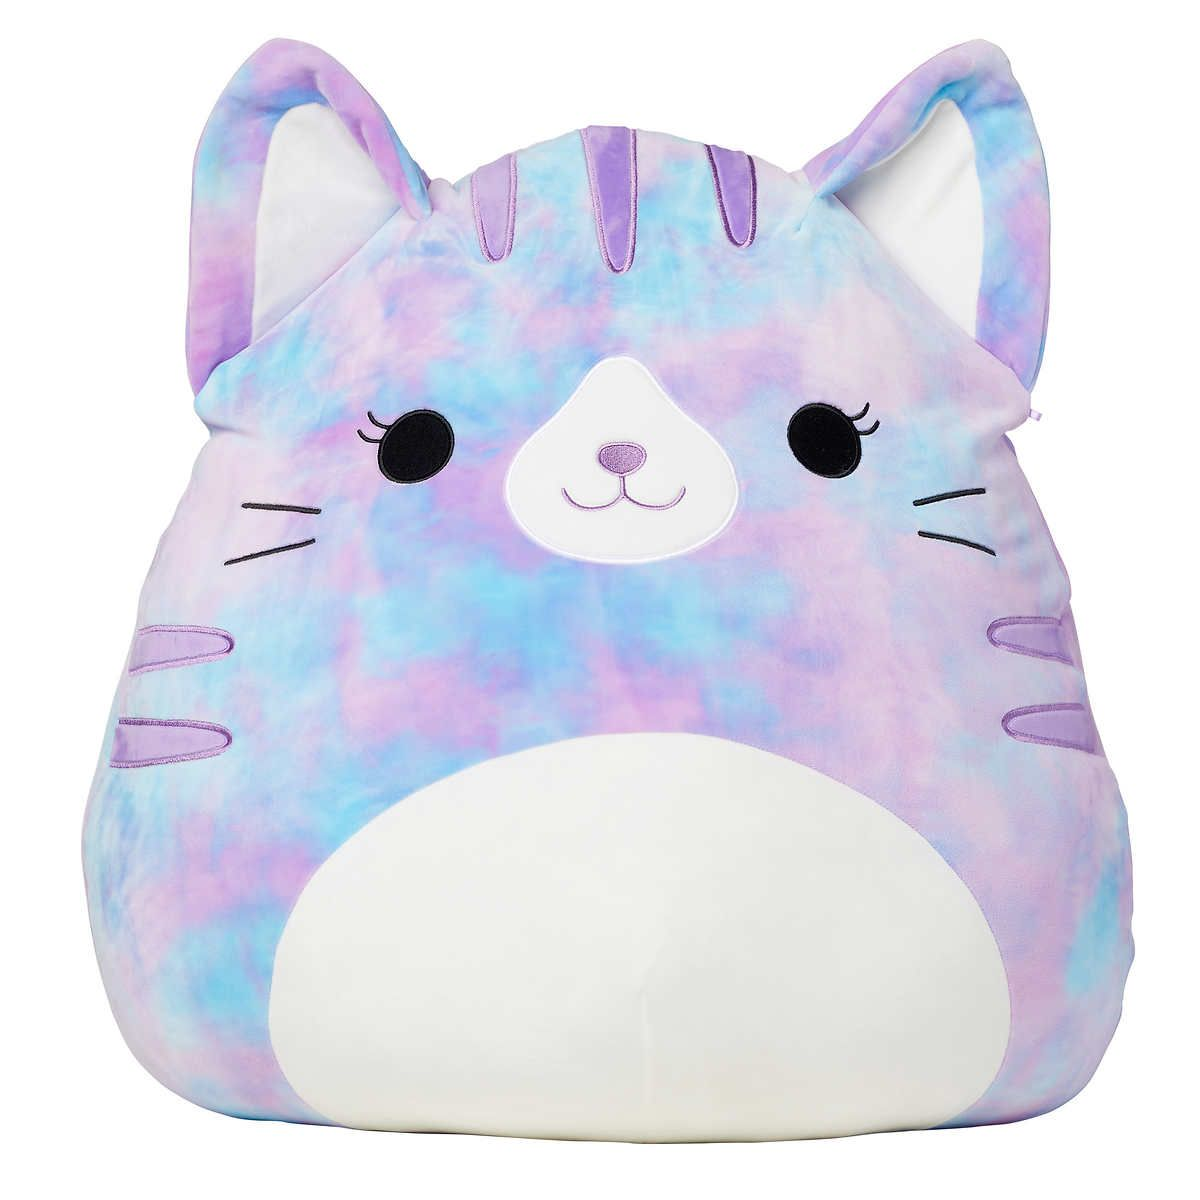 Jumbo Squishmallows 24 Plush Tabby Cat In 2021 Plush Tabby Cat Tabby Cat Plush